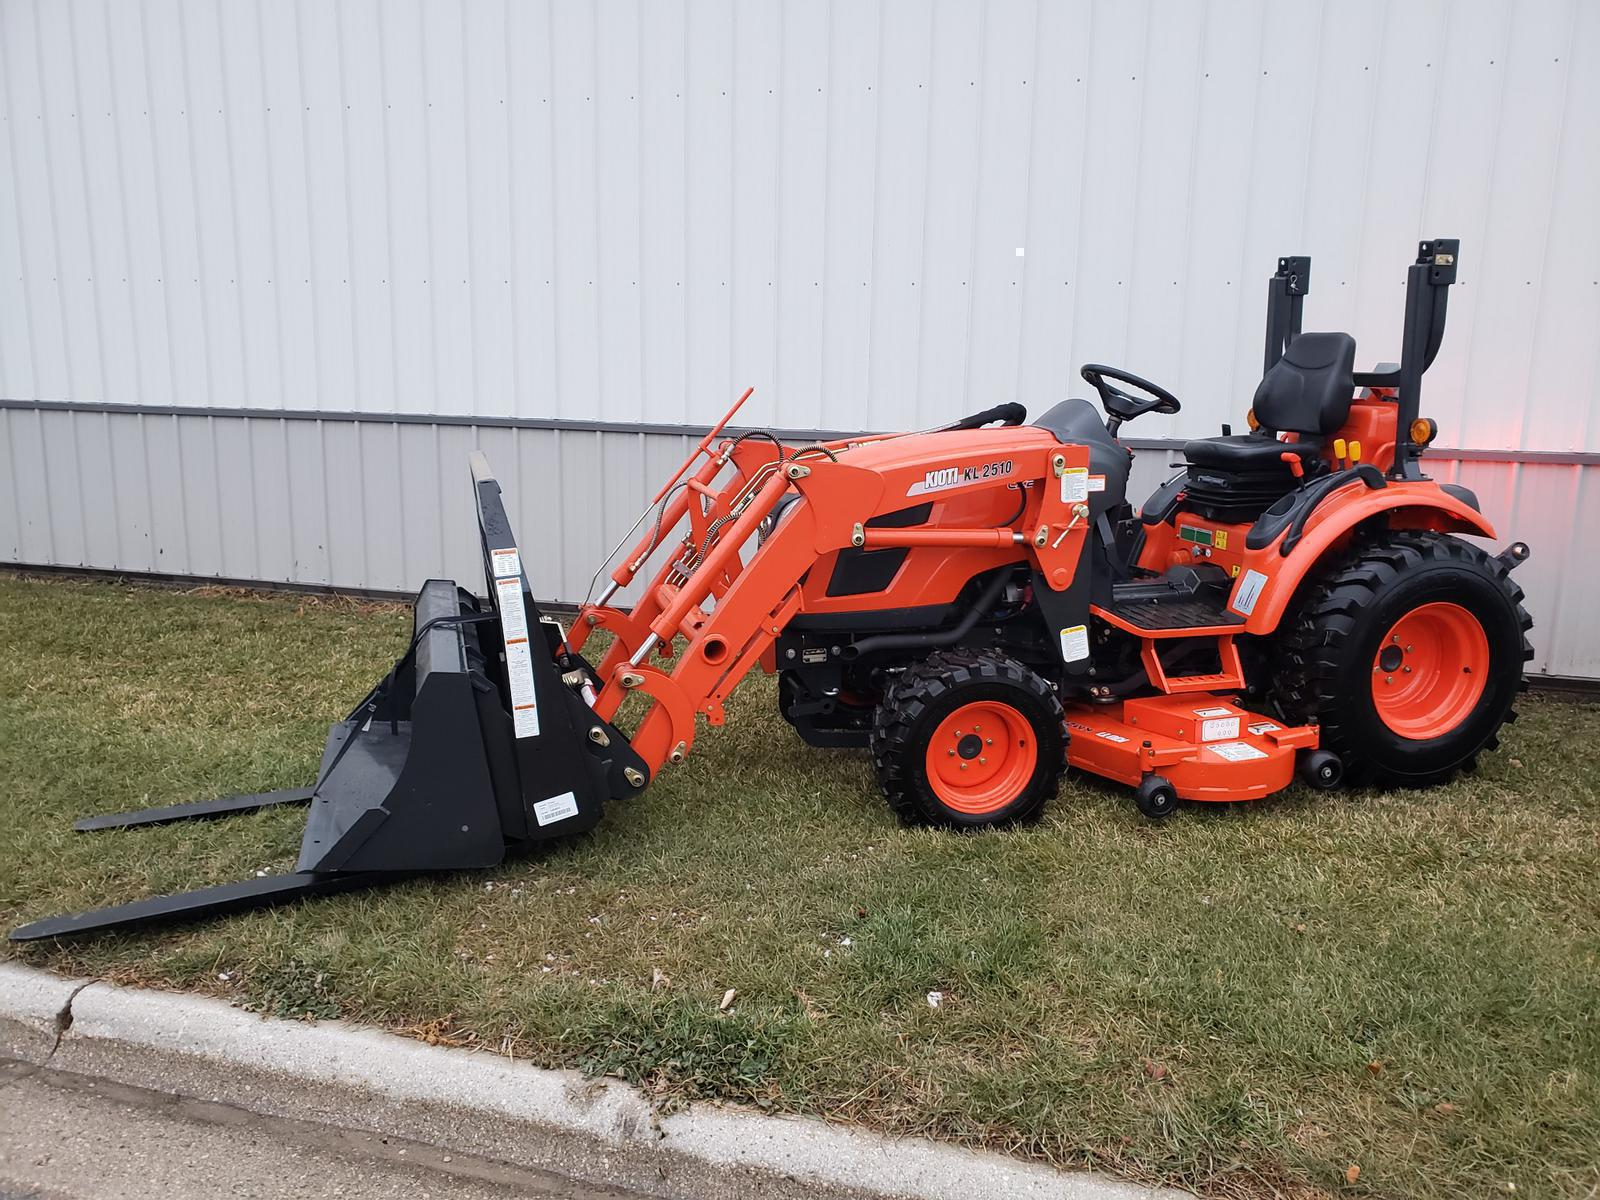 Inventory from KIOTI and Midsota Luxemburg Implement Co